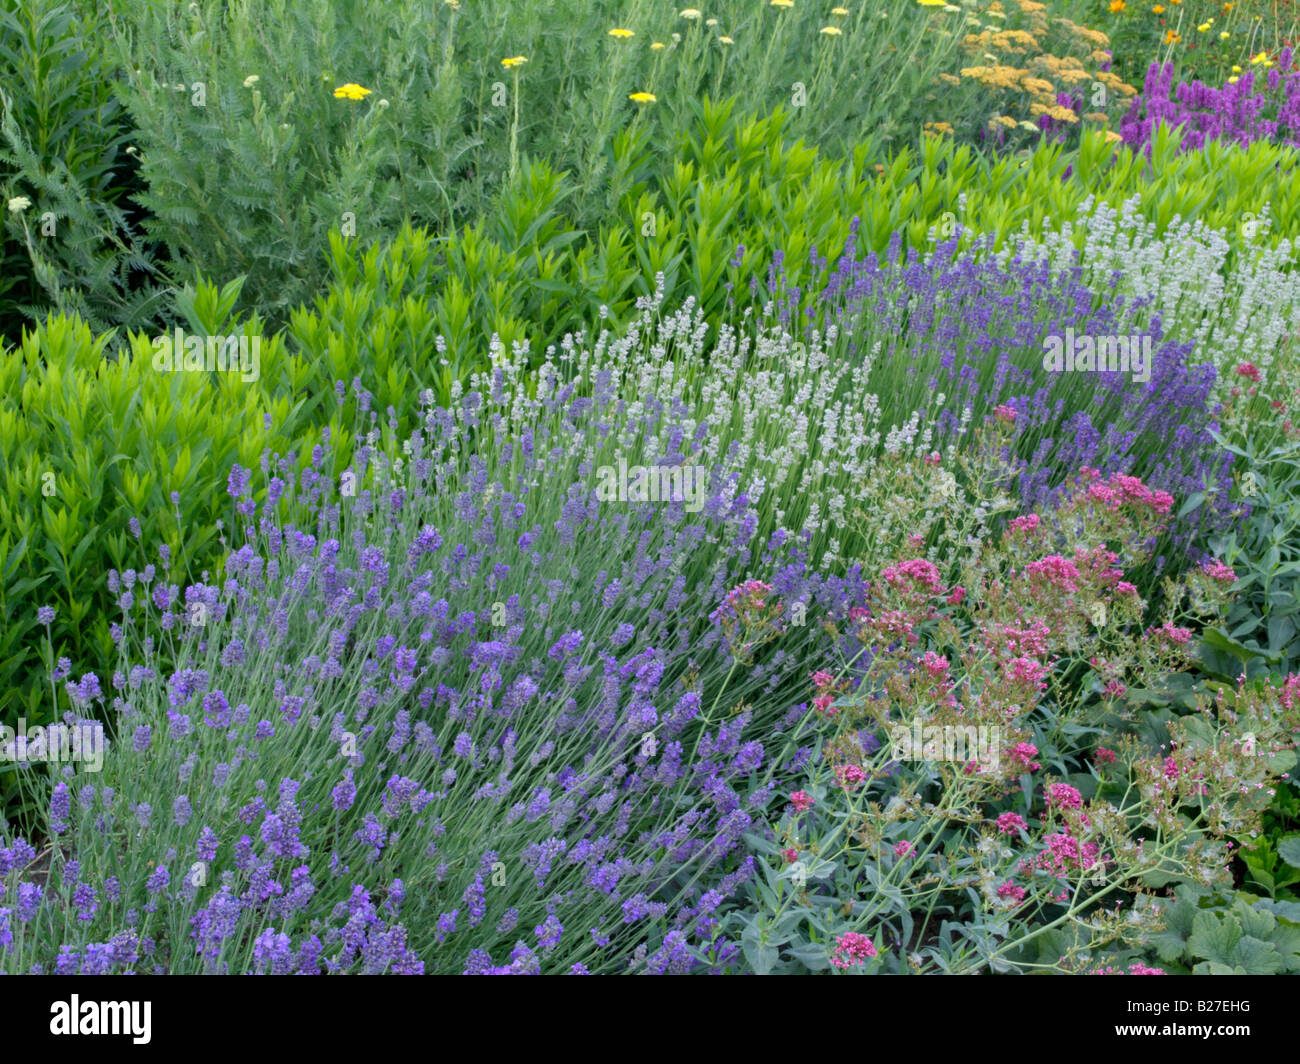 Plants for flower beds - Common Lavender Lavandula Angustifolia Munstead And Lavandula Angustifolia Edelweiss And